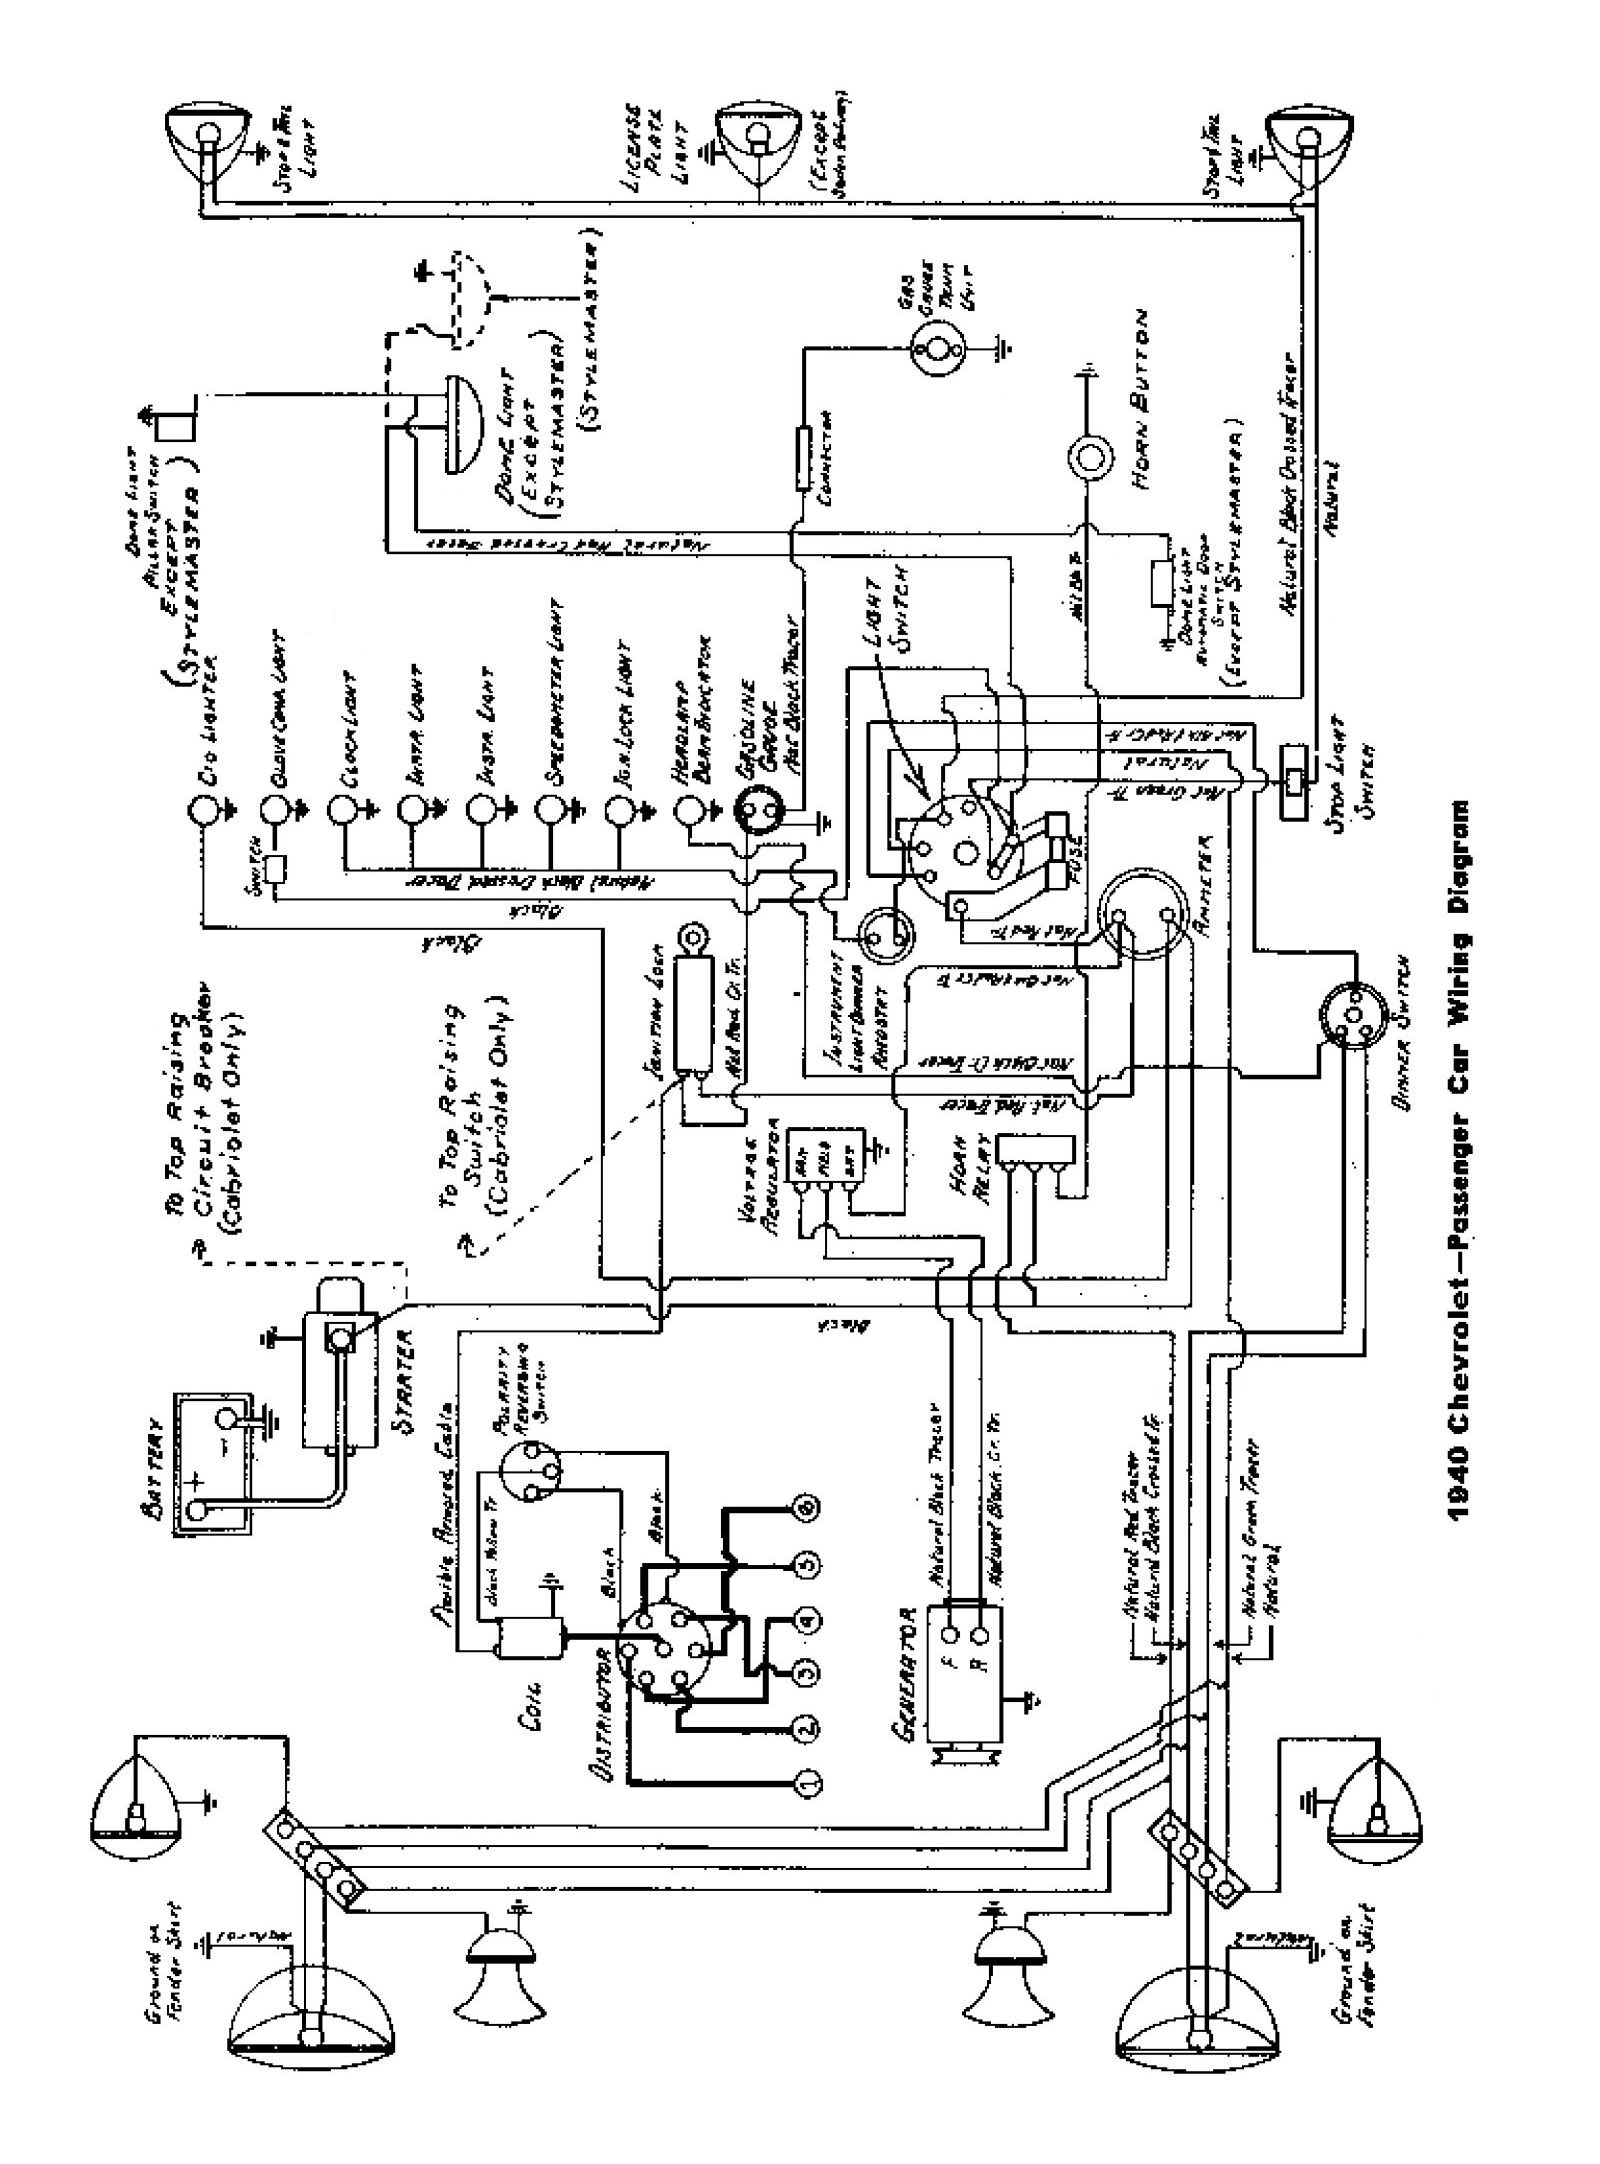 Car Ignition System Wiring Diagram Wiring Diagrams – My Wiring DIagram